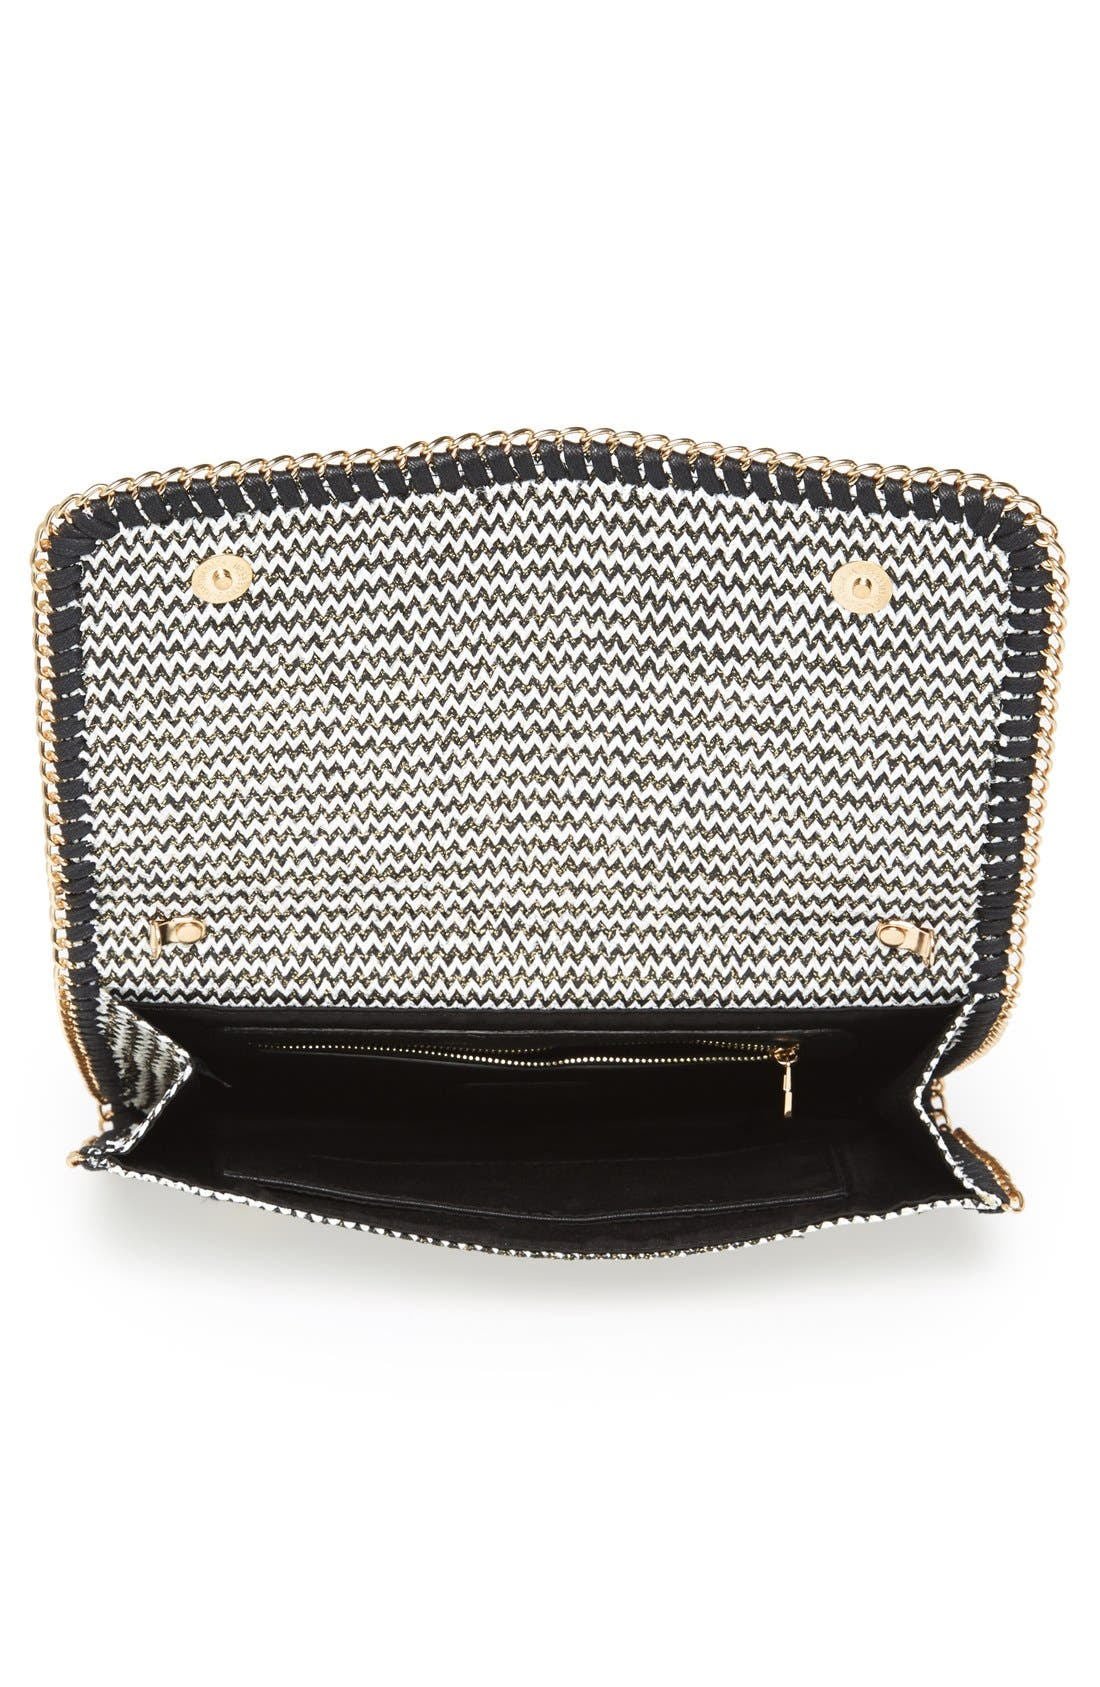 PHASE 3,                             'Zigzag' Chain Clutch,                             Alternate thumbnail 4, color,                             001